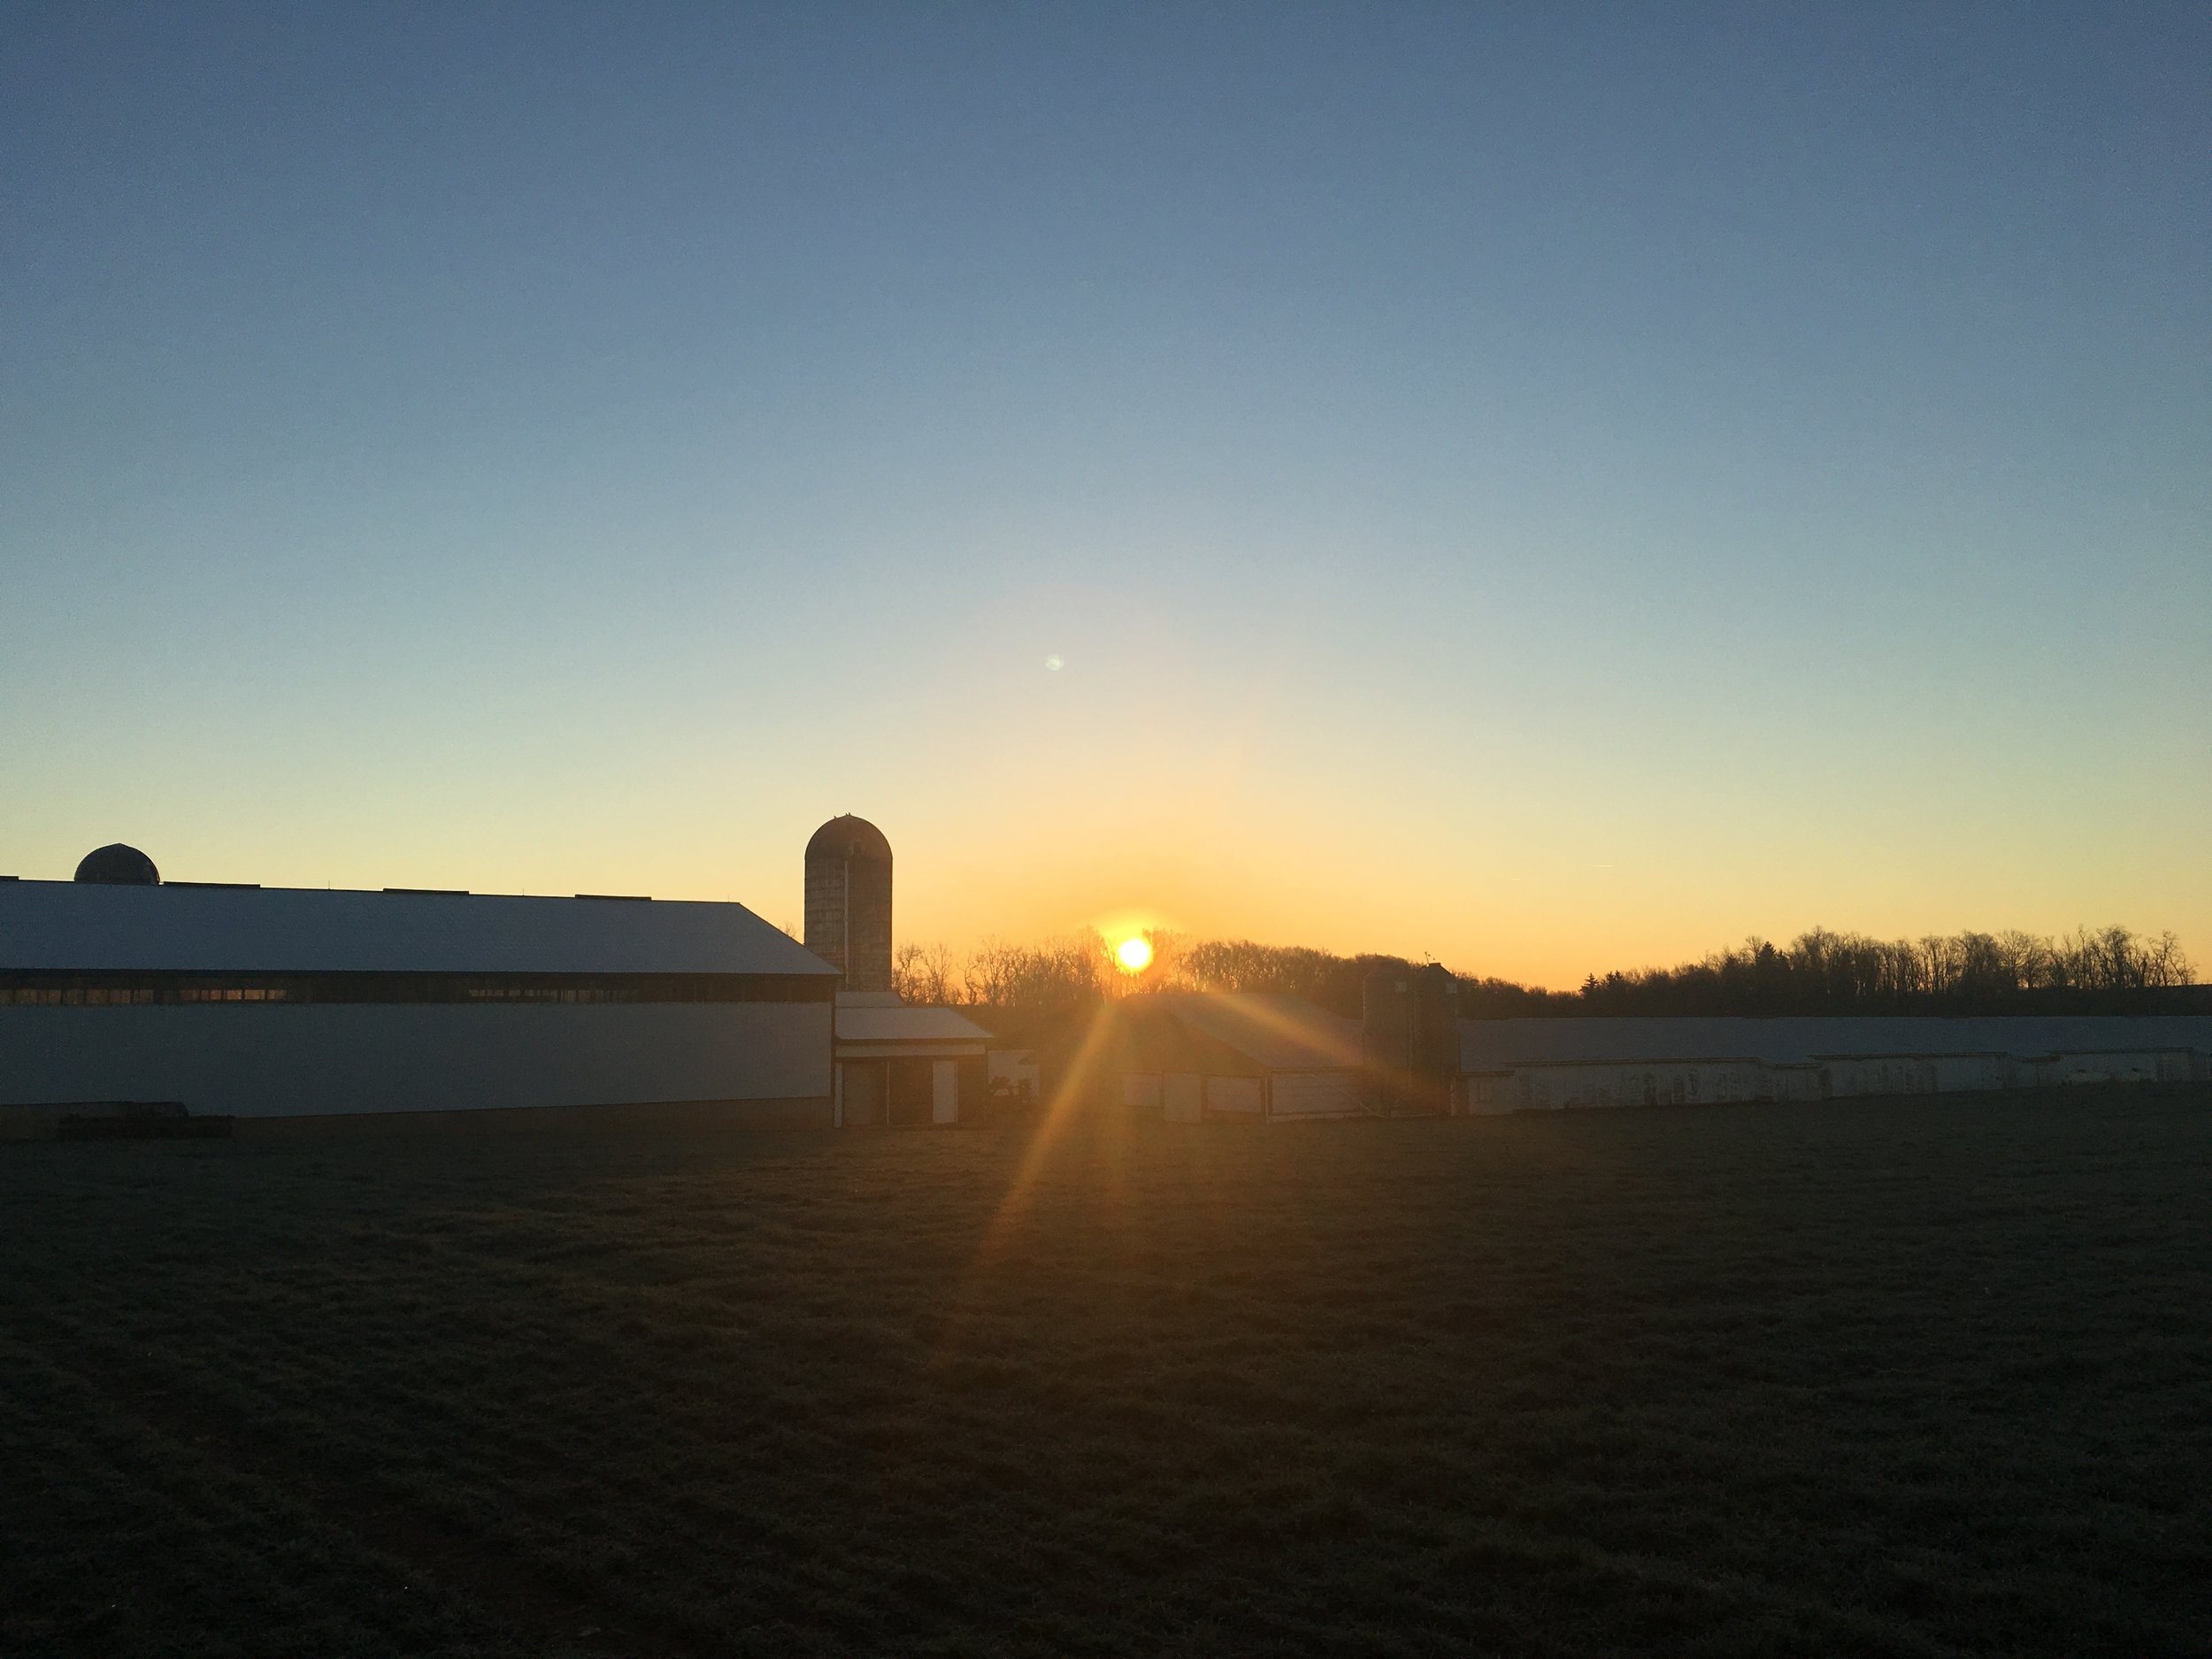 Sunrise at the Maplehofe Dairy Farm in Quarryville